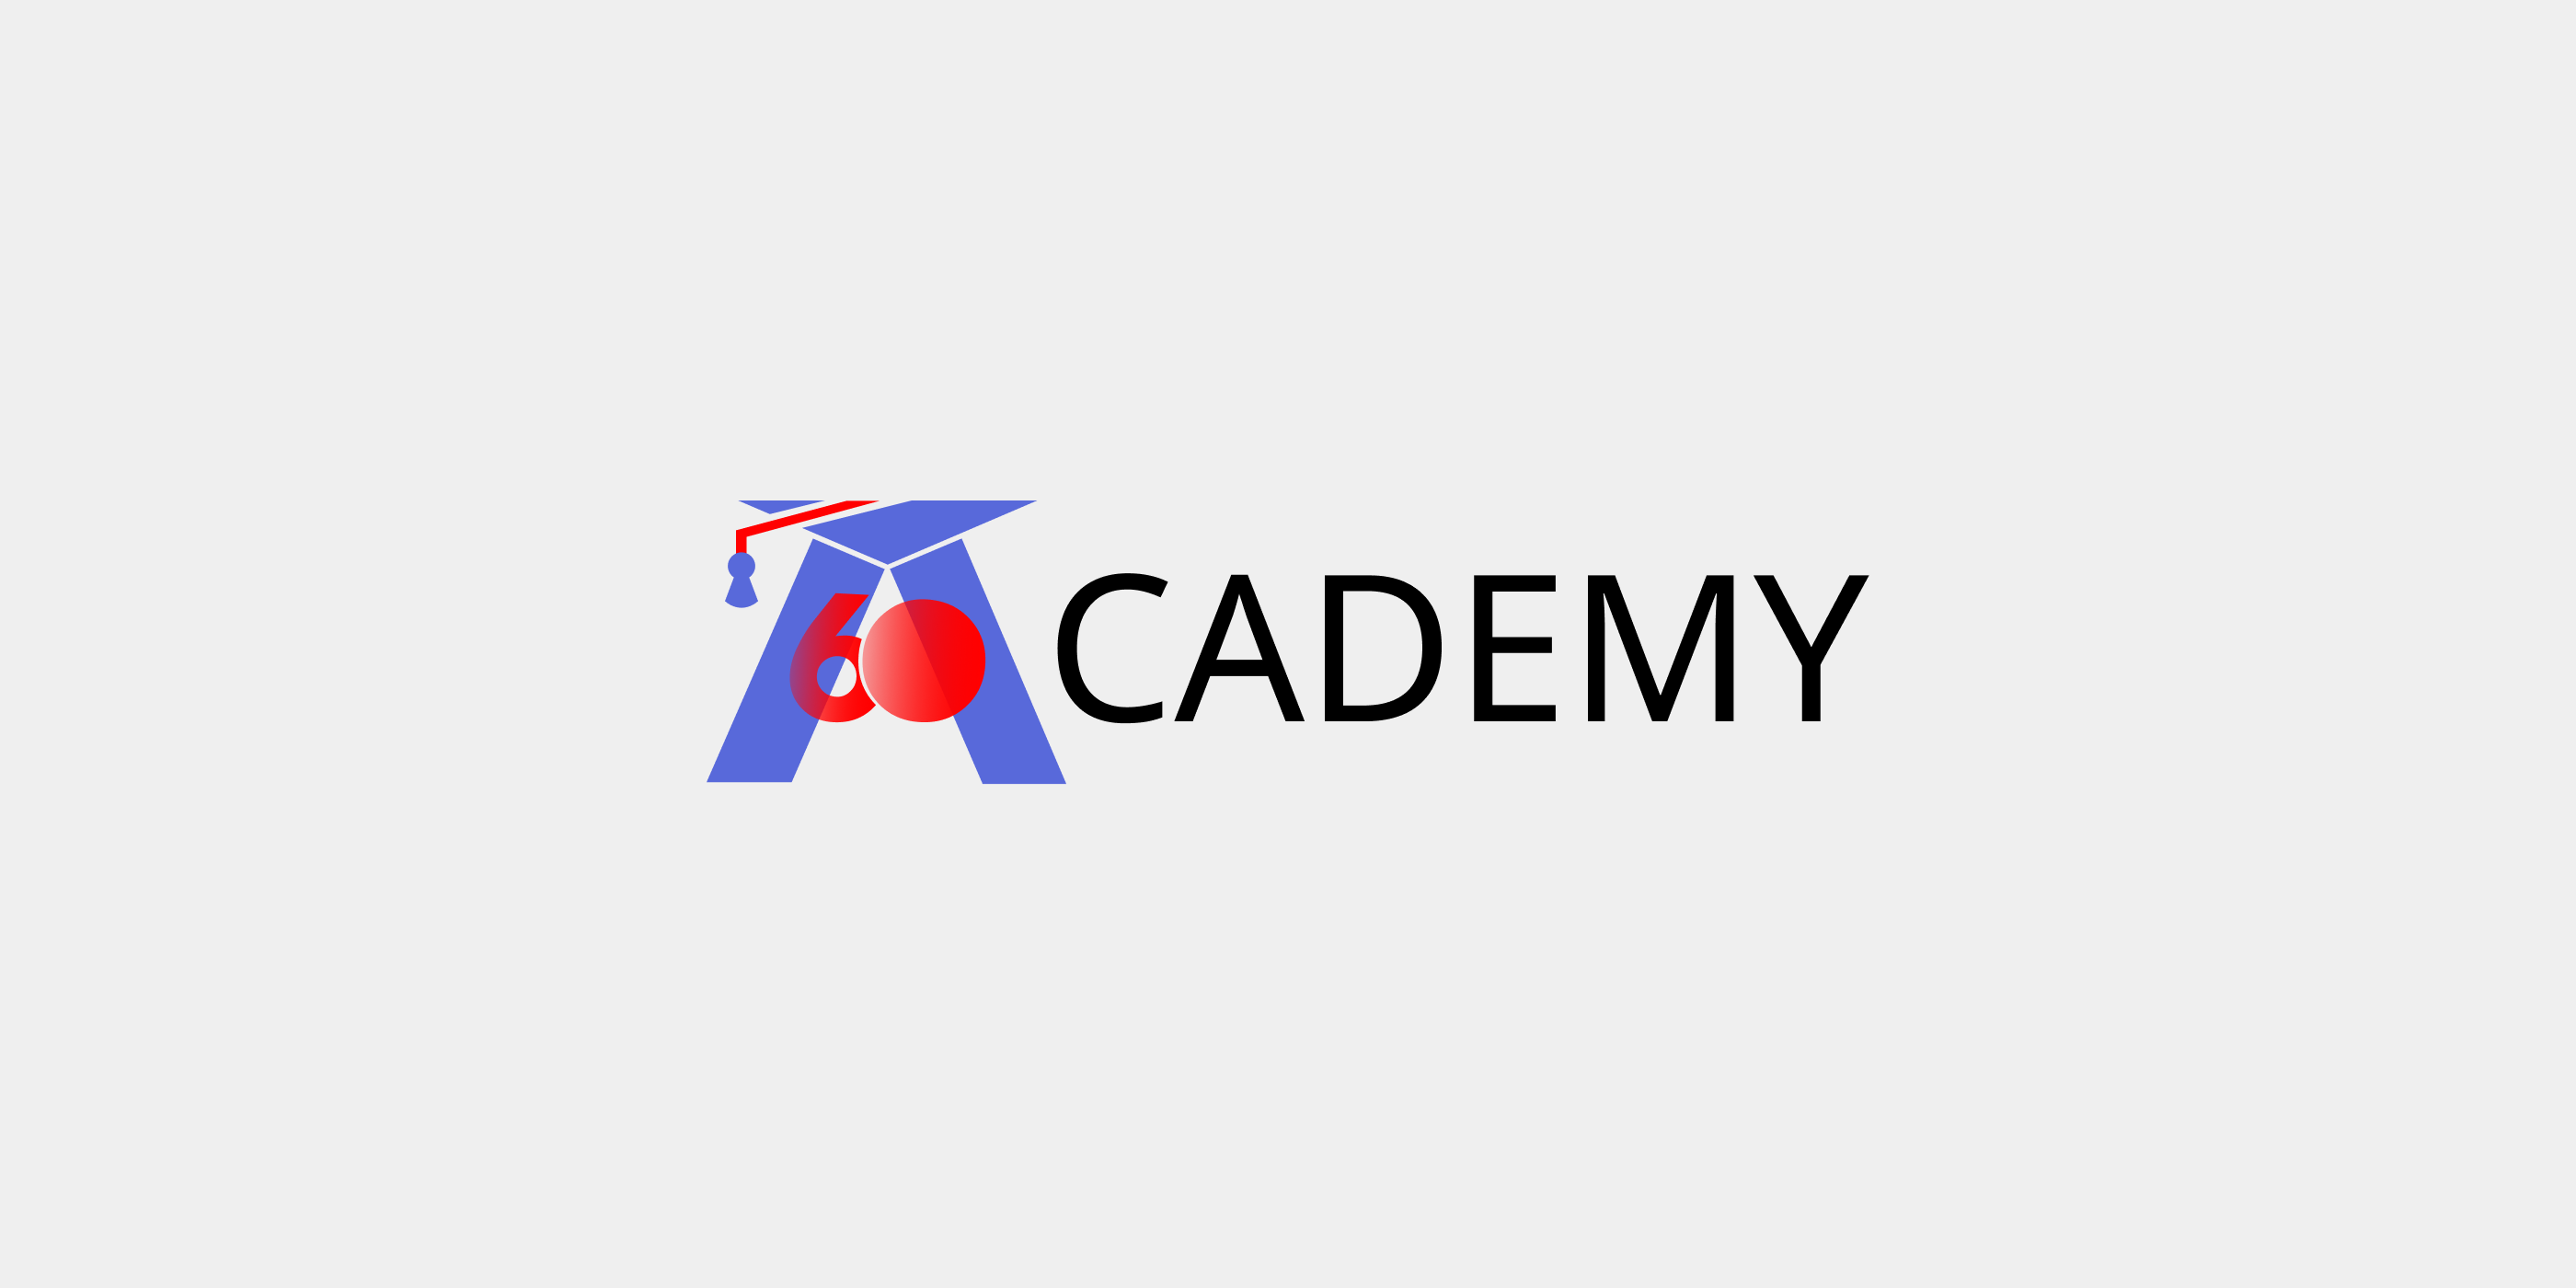 Welcome to the Academy60 blog!